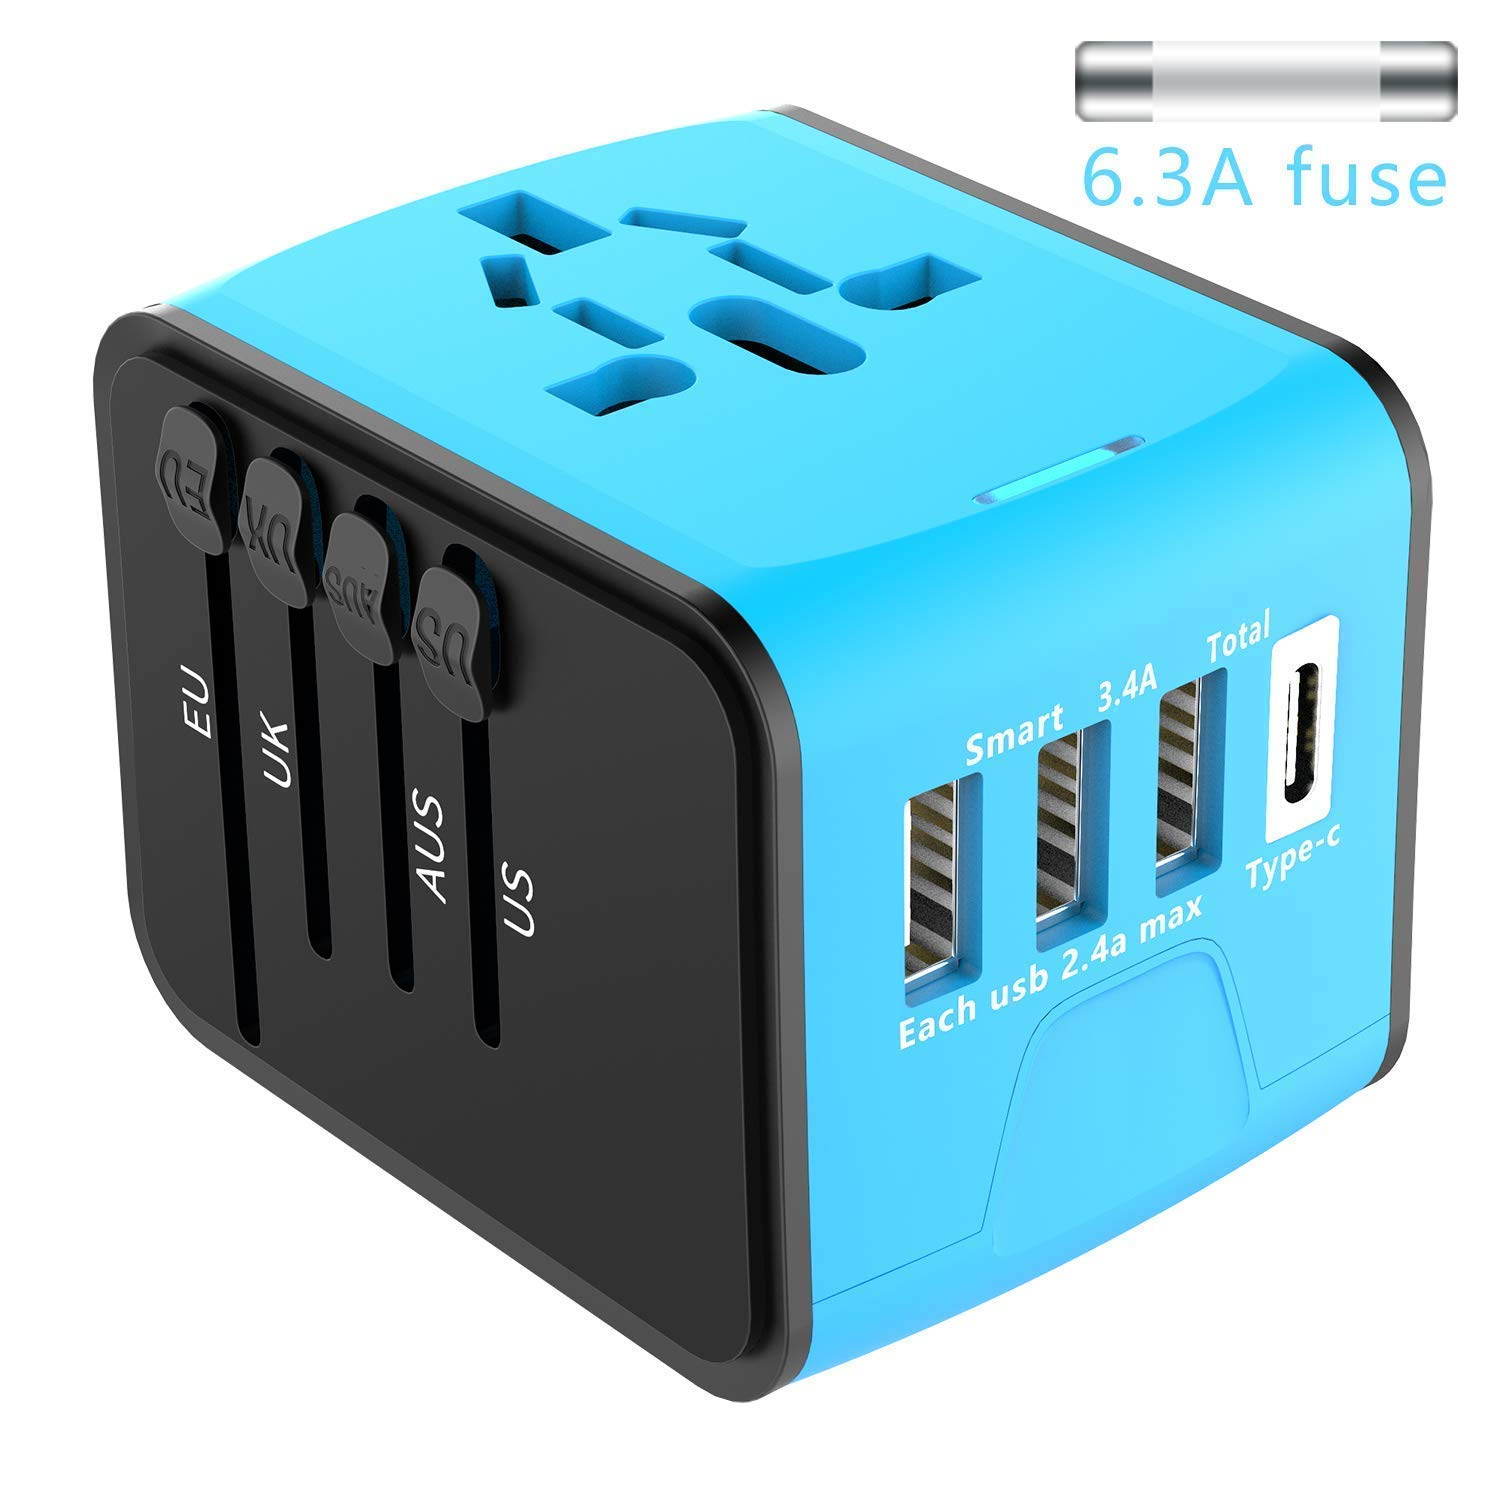 Universal Fit Travel Power Adapter - 3 USB + 1 Type C - Fast 2.4 A - Worldwide International Travel Adapter, AC Wall Plug Adapter – All in One for US UK EU AUS Asia - 1-Year Replacement Warranty